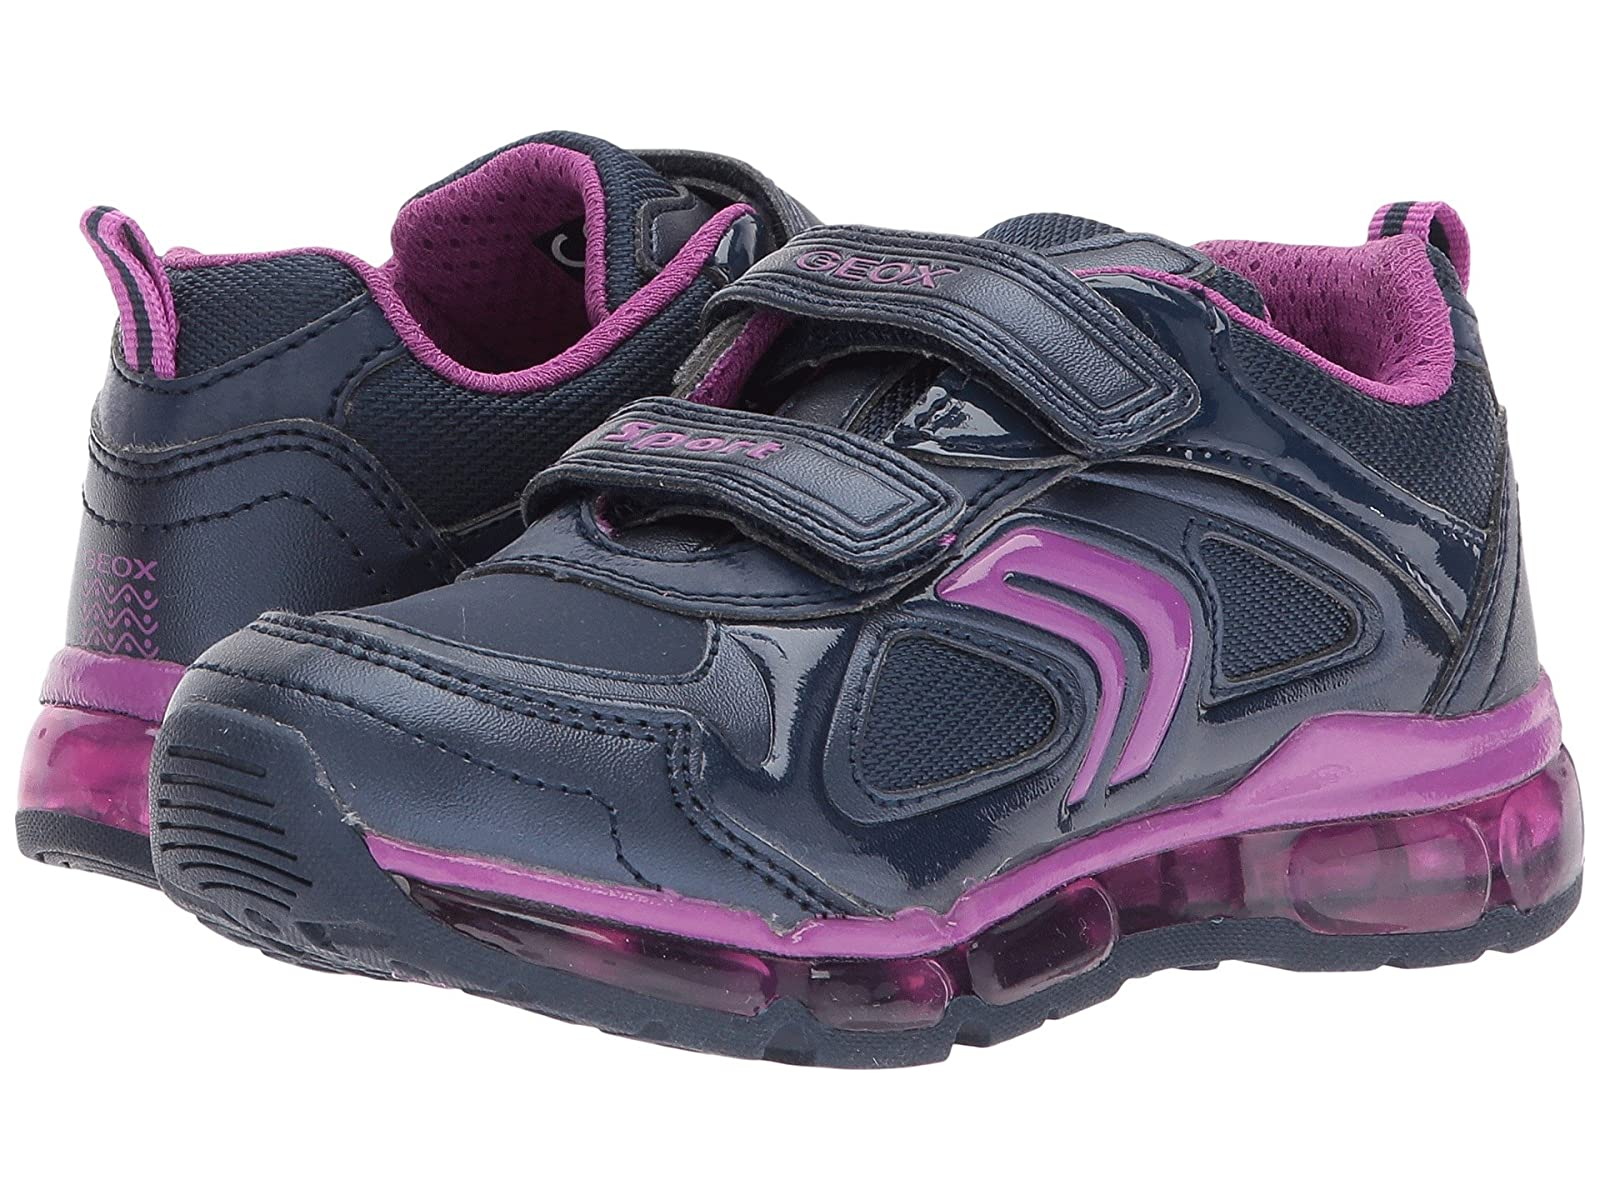 Geox Kids JR Android Girl 12 (Toddler/Little Kid)Cheap and distinctive eye-catching shoes